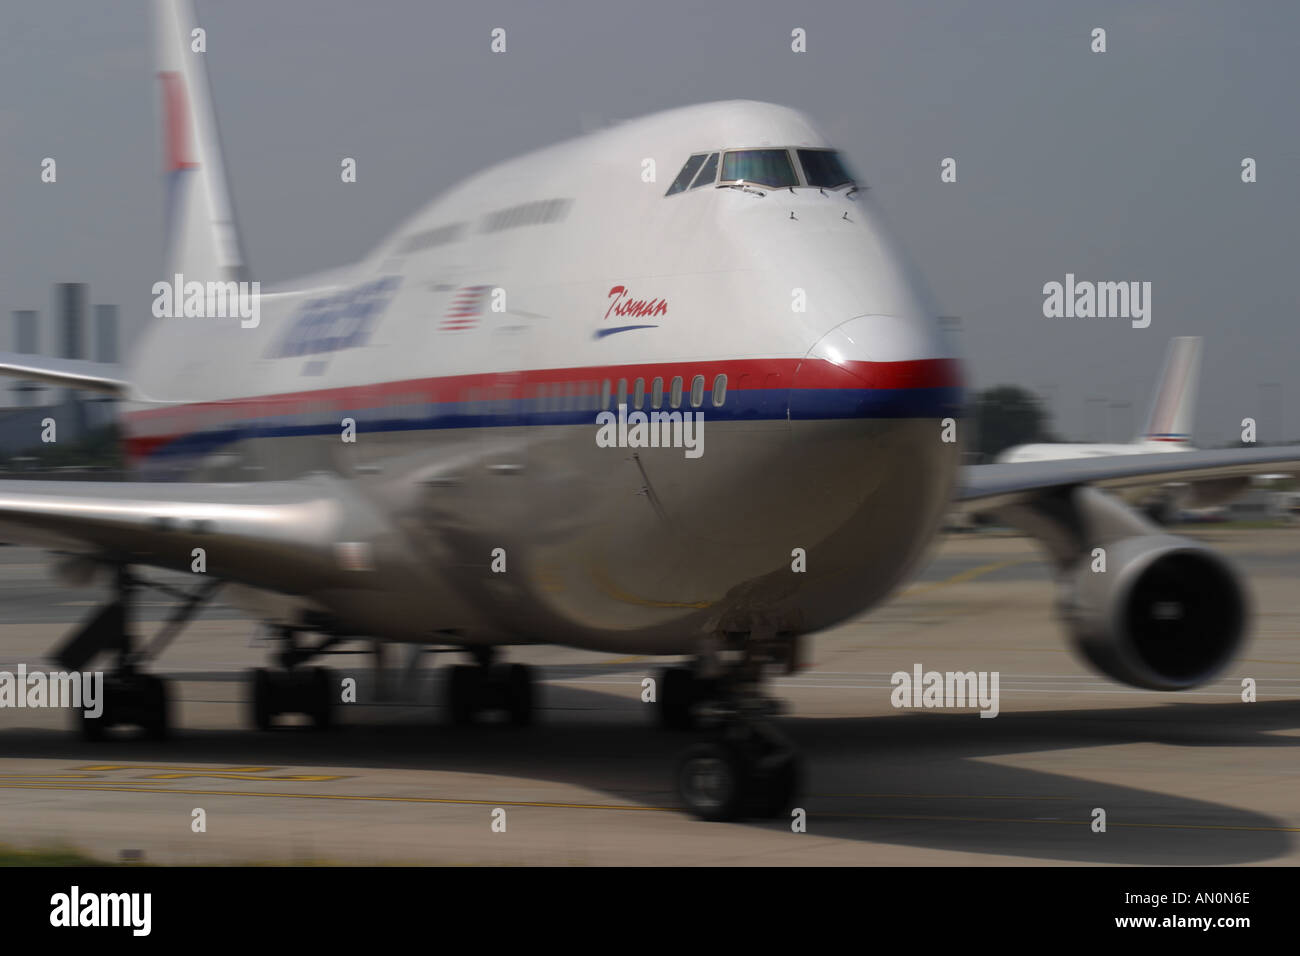 Jumbo Jet taxing at airport with motion blur Stock Photo